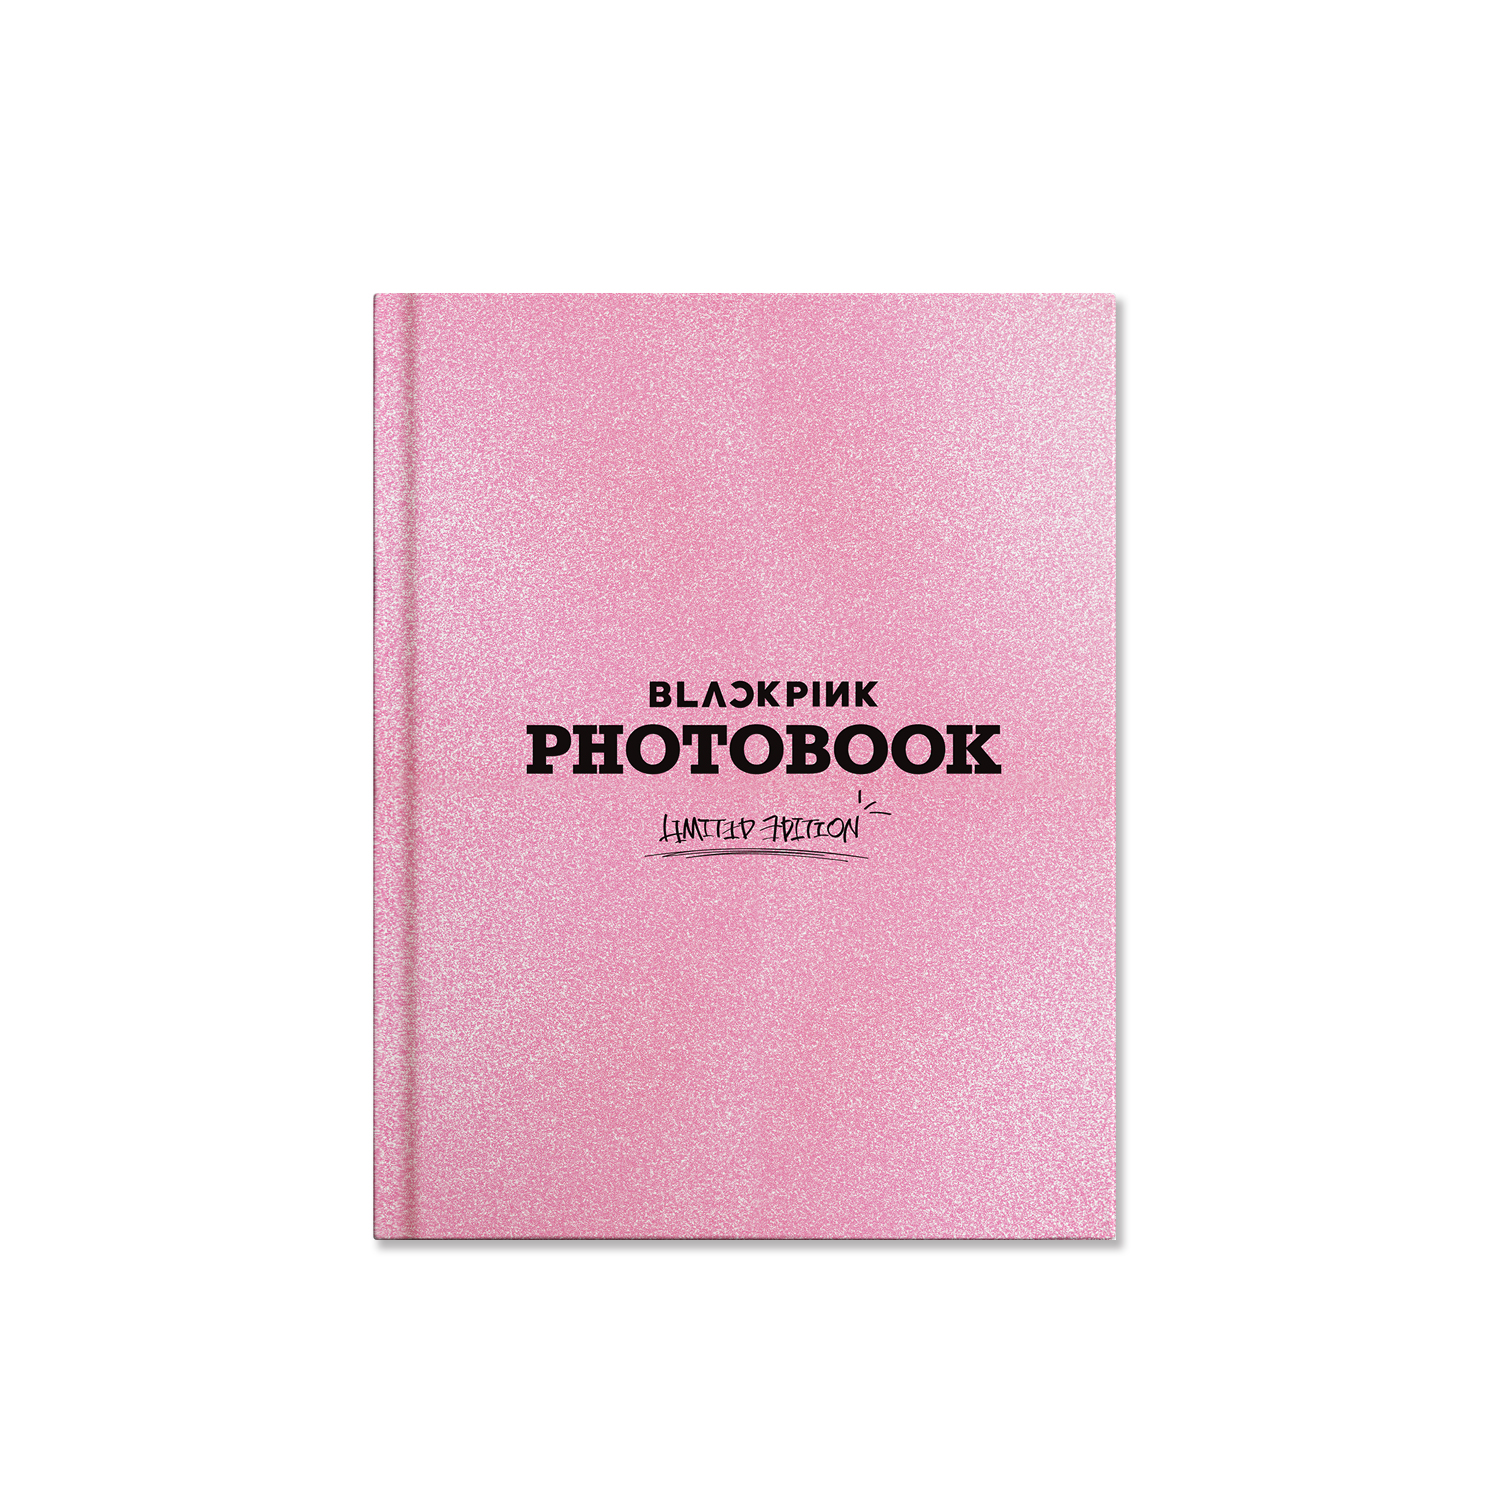 BLACKPINK PHOTOBOOK -LIMITED EDITION-